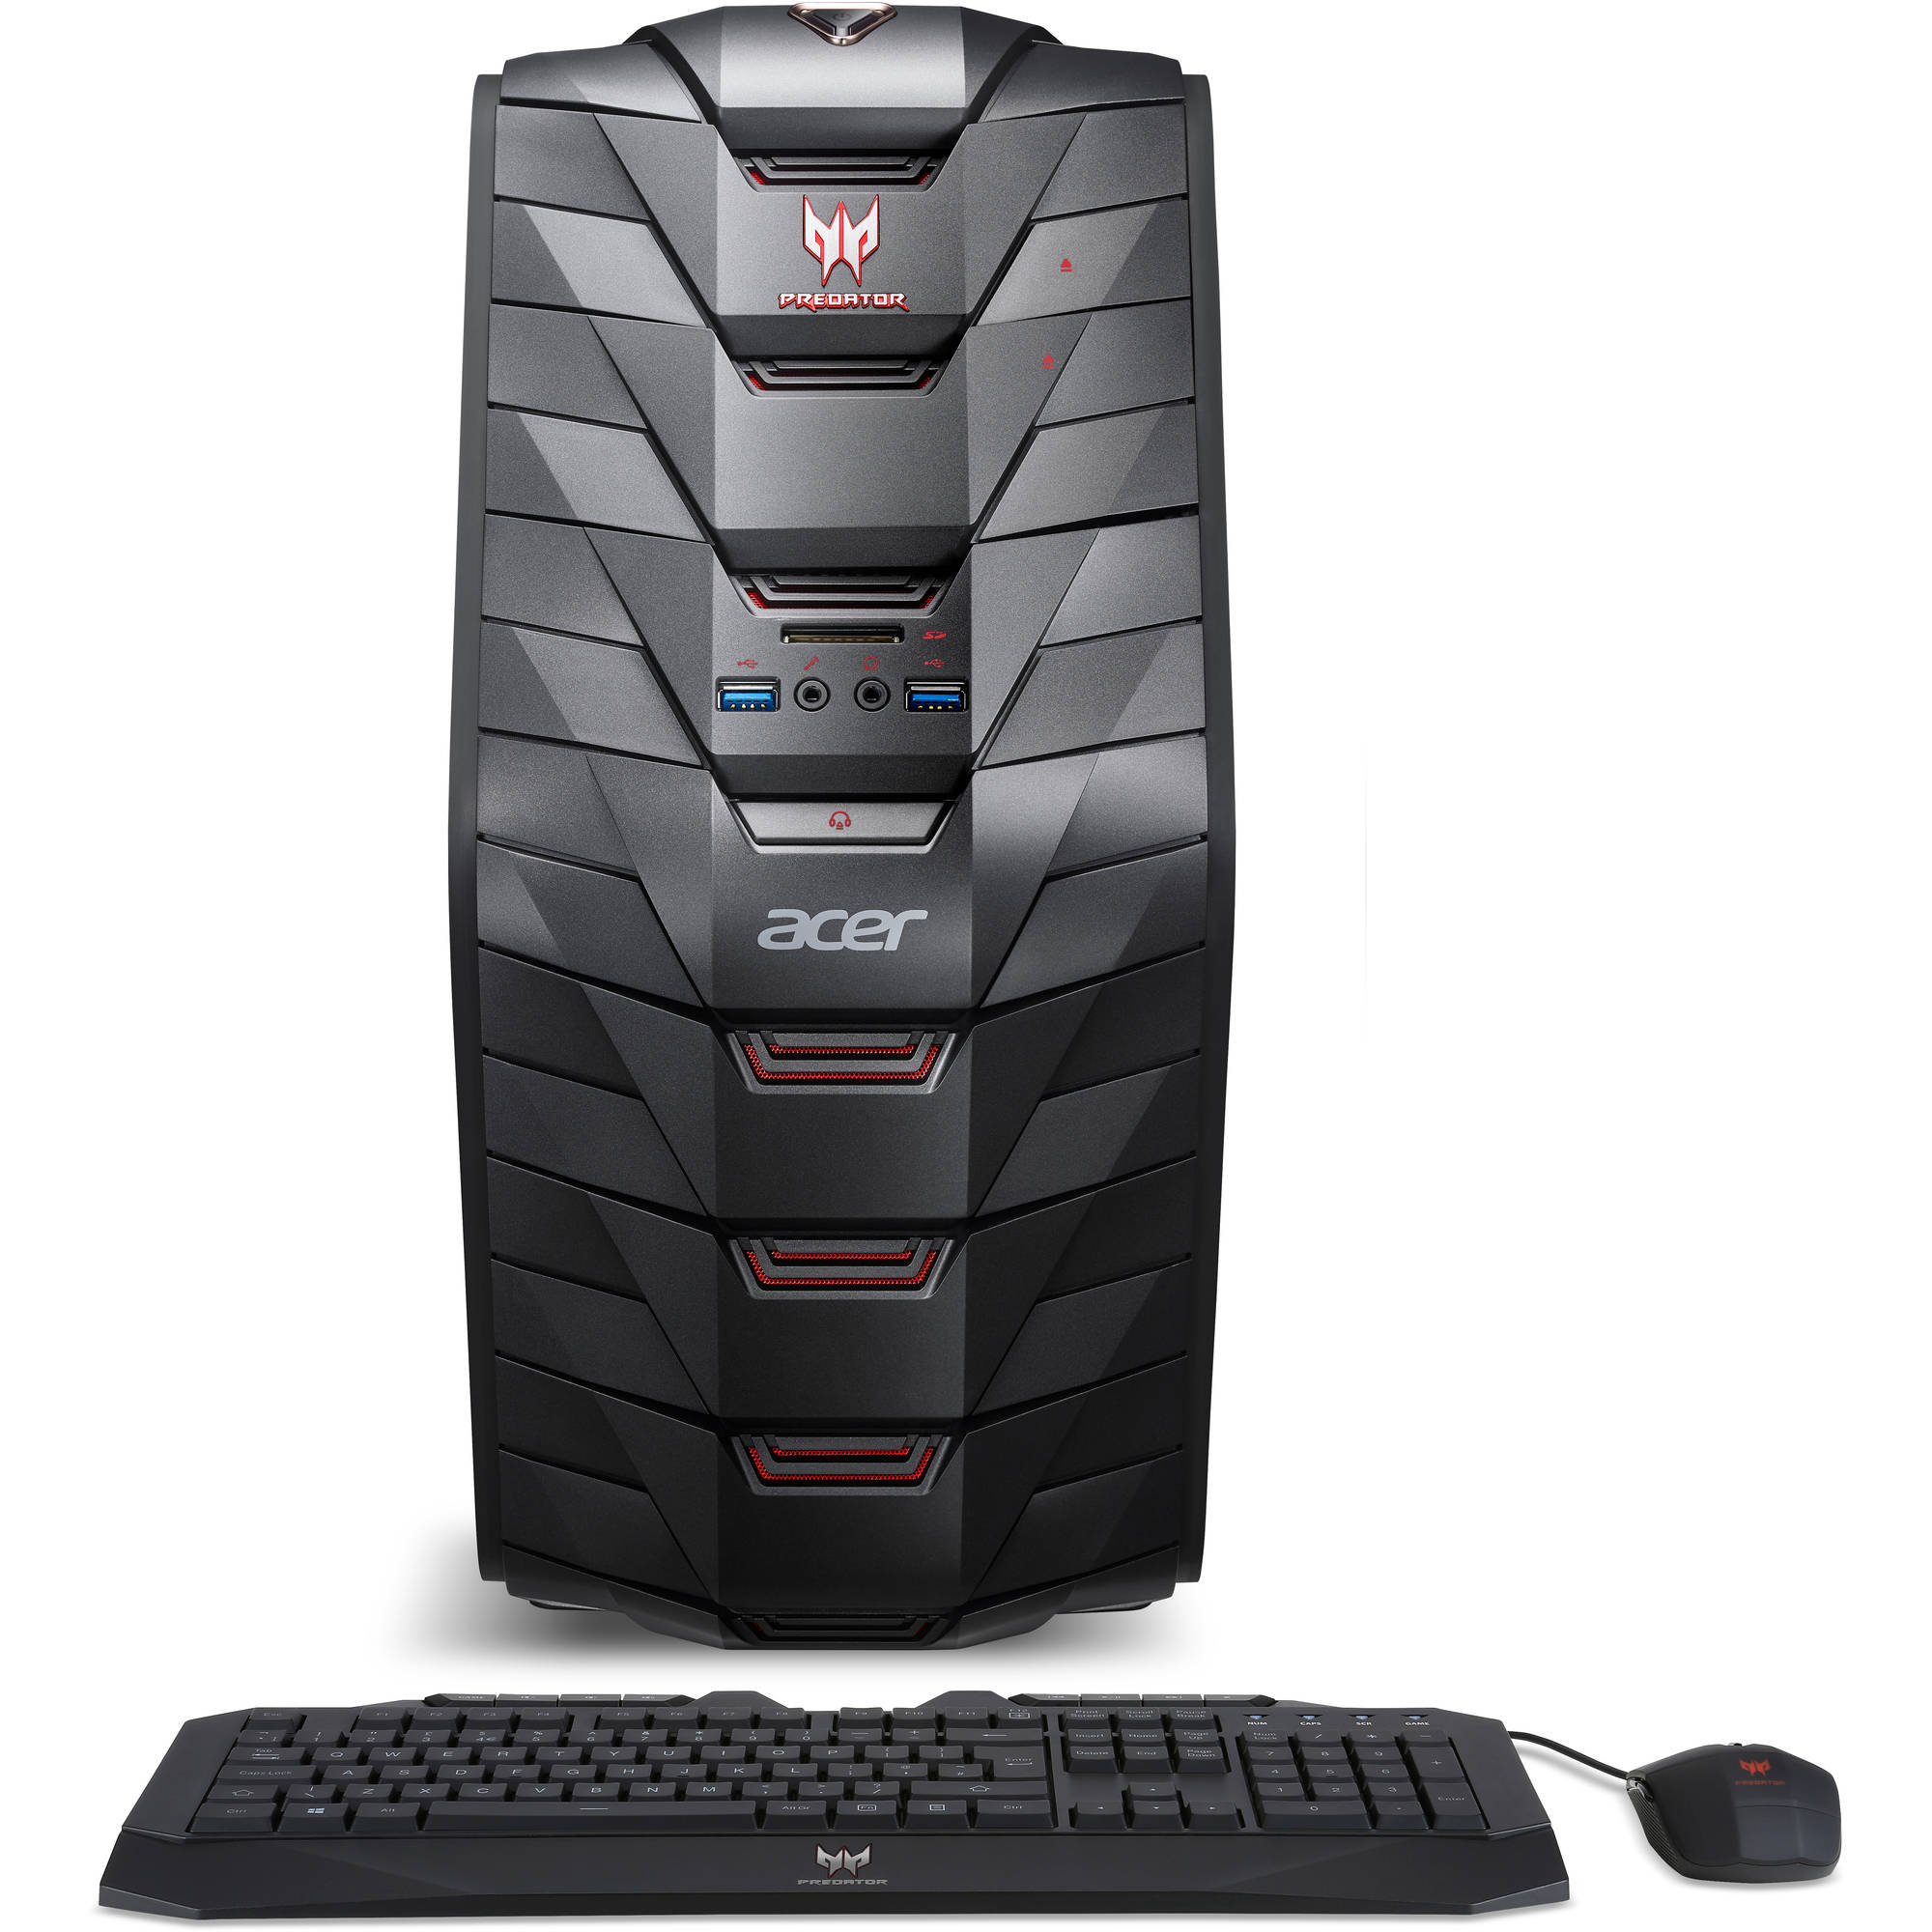 Acer Predator AG3-710-UW11 Desktop PC with Intel Core i5-6400 Processor, 8GB Memory, 1TB Hard Drive and Windows 10 Home (Monitor Not Included)